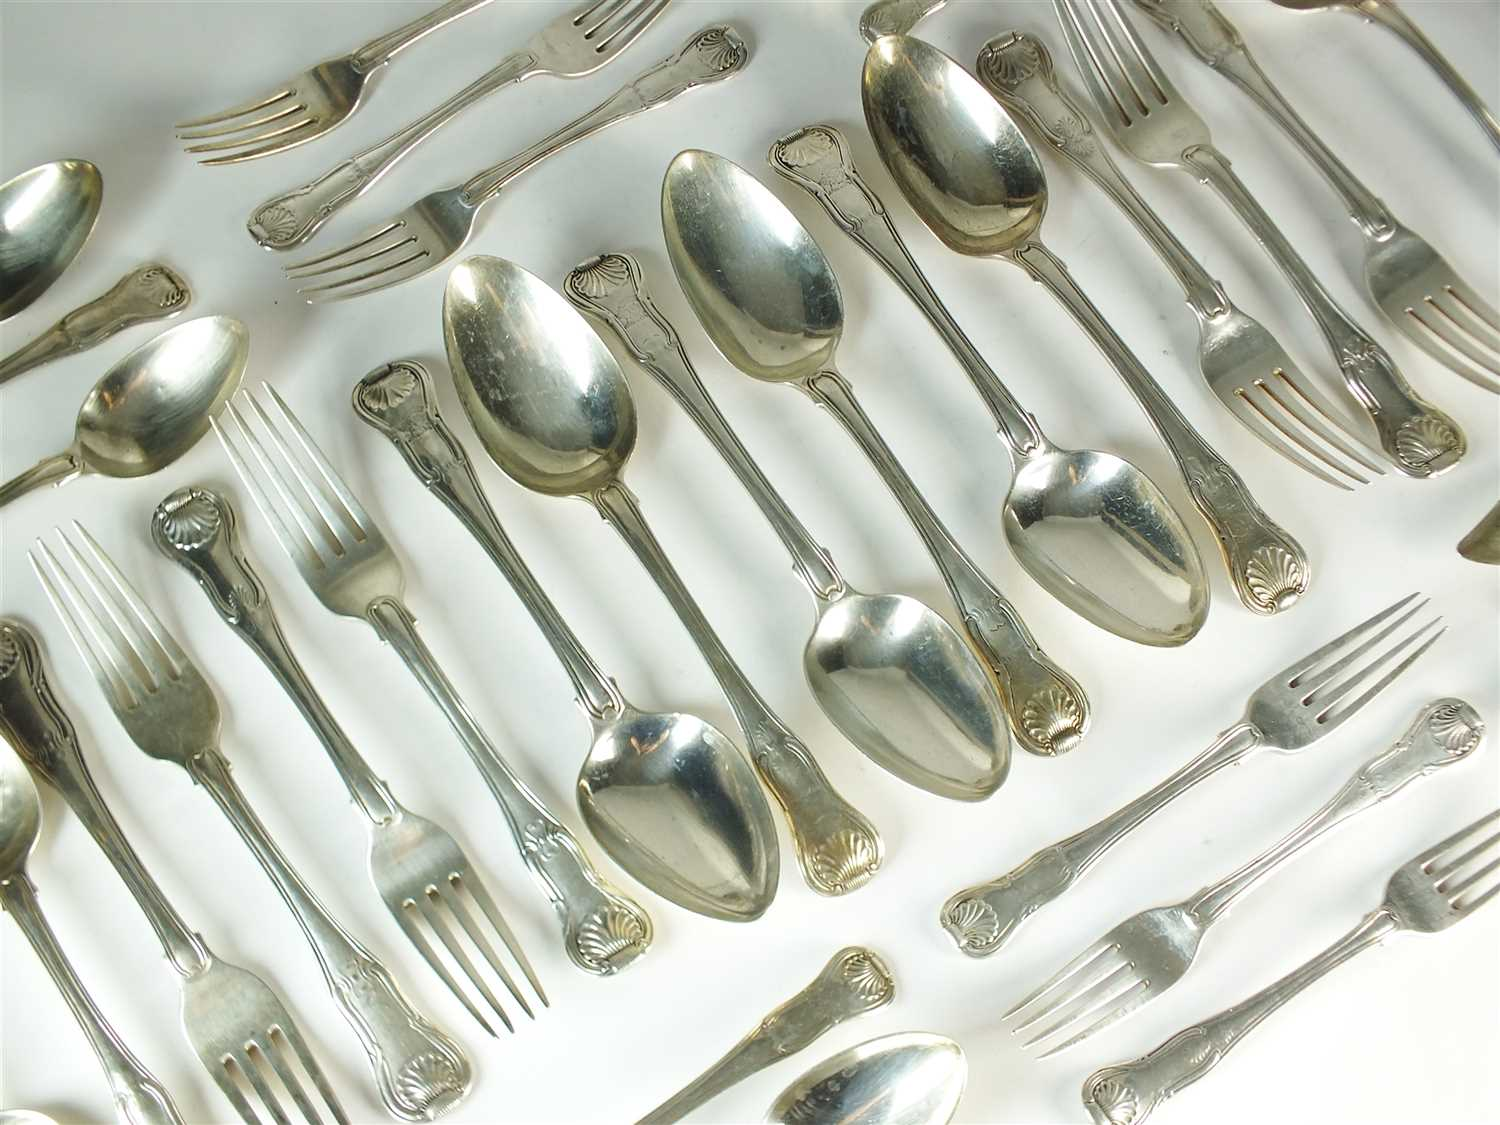 238 - A harlequin collection of Kings pattern silver flatware